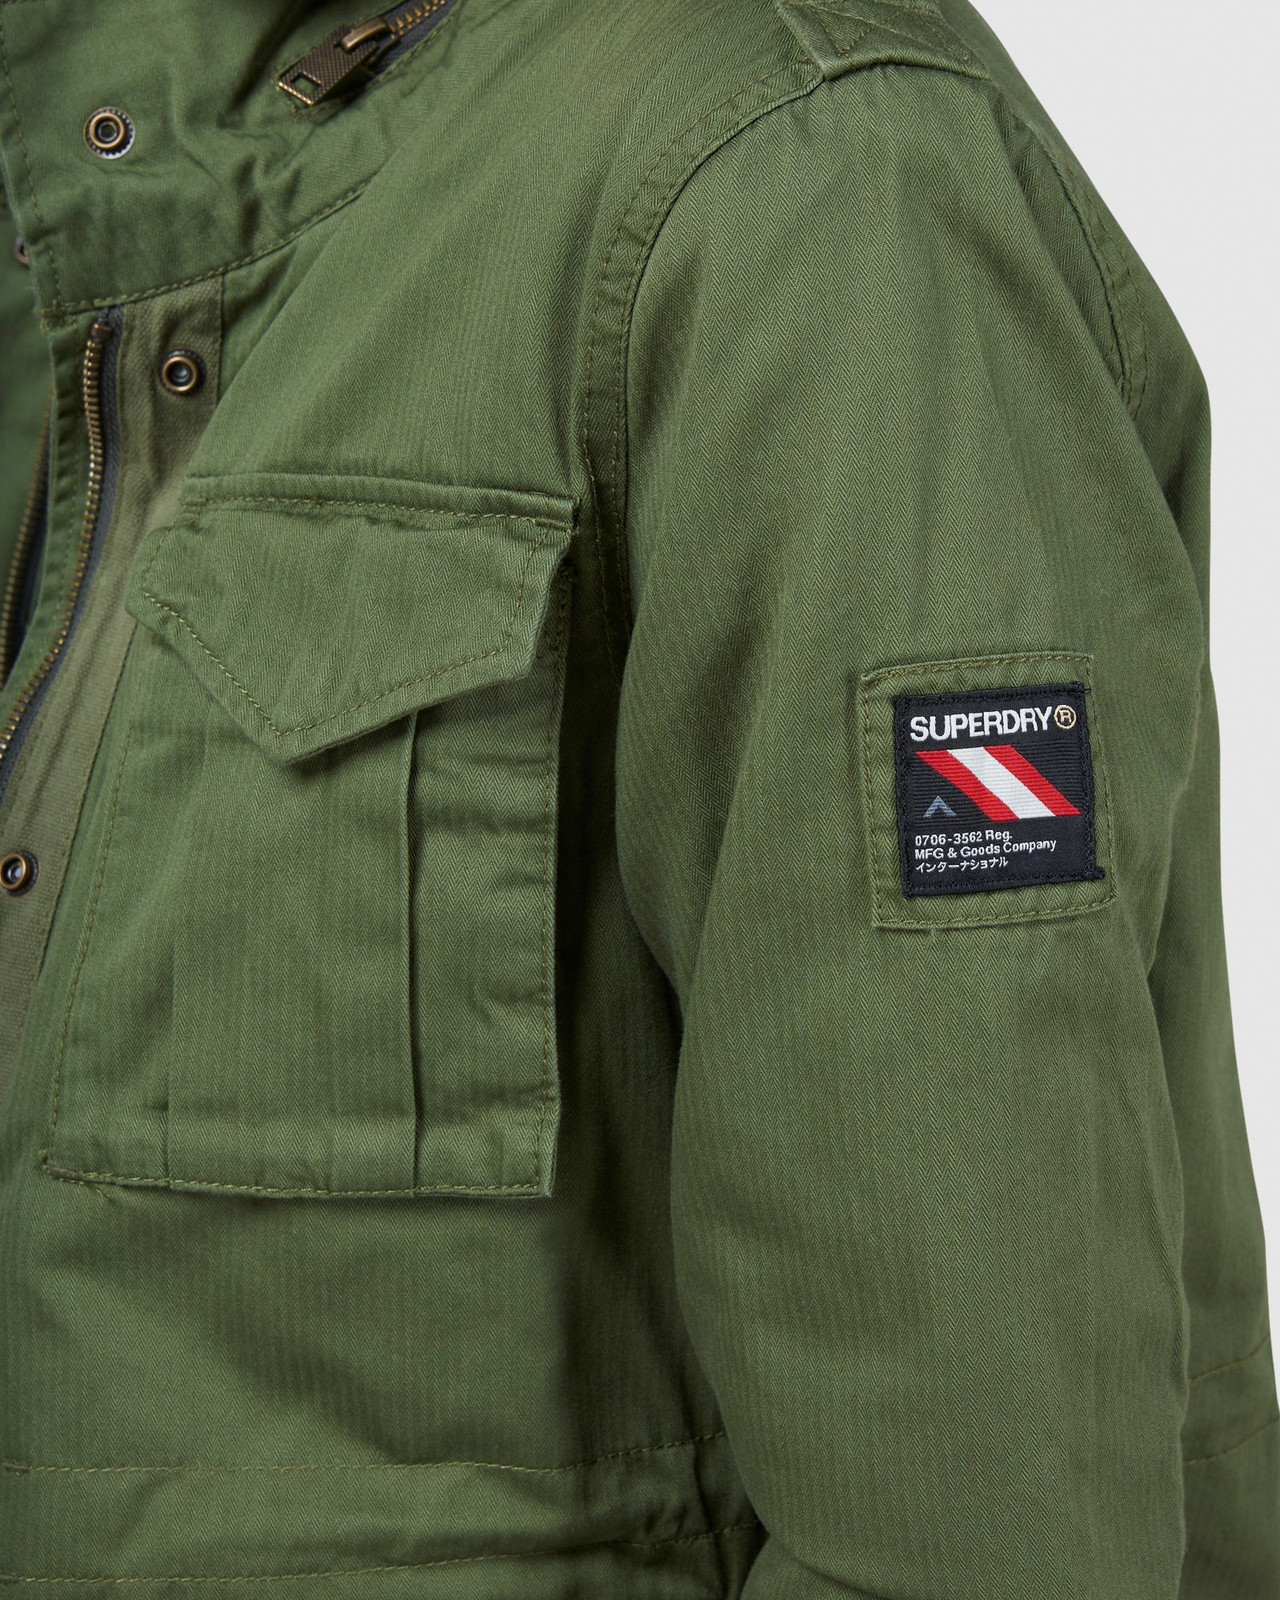 Superdry Womens CLASSIC RECRUIT BORG JACKET Green Military Jackets 6